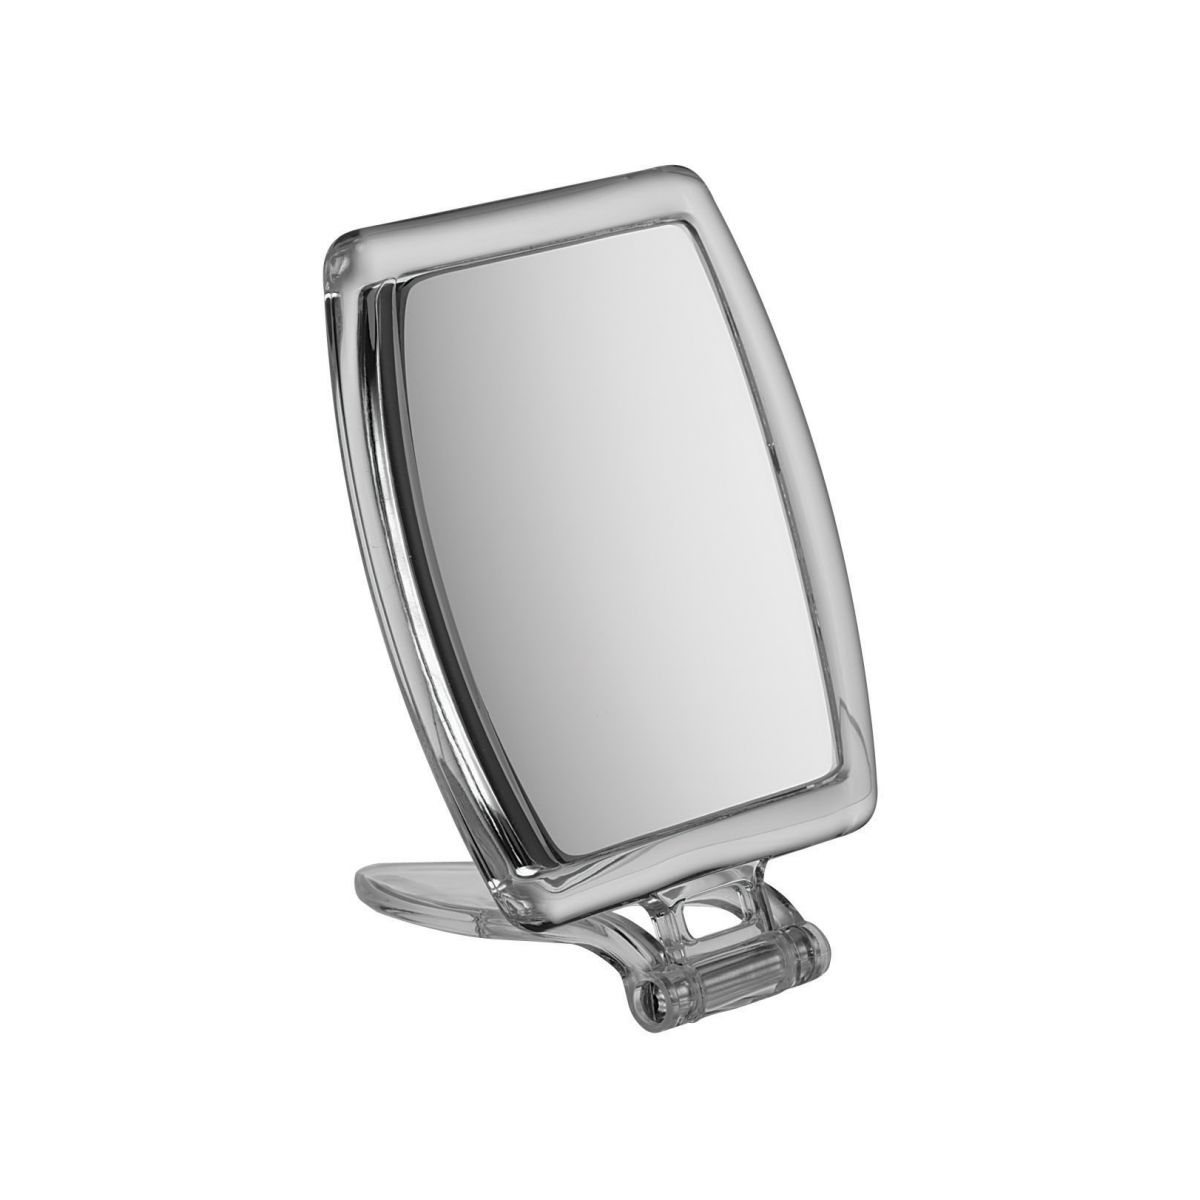 A004 10 1 - Magnificationgie' Small Perspex Handbag Super Strong 10x Magnification Mirror - A004/10